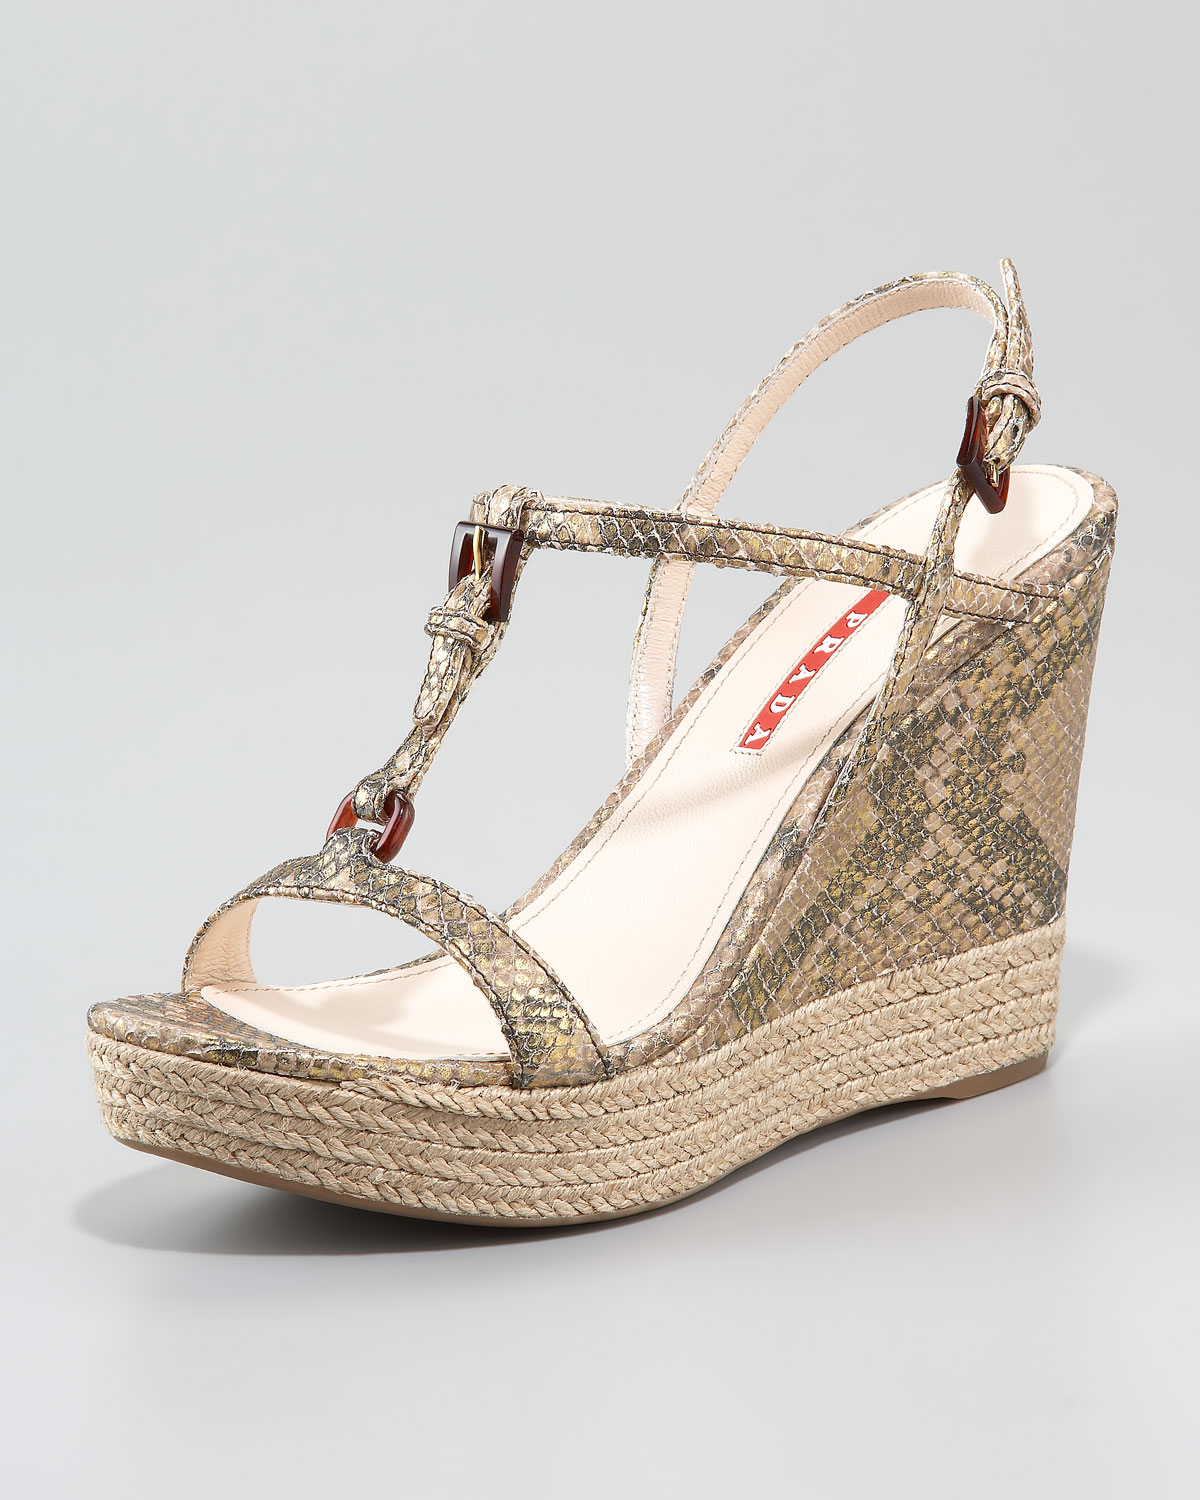 brand new unisex online Prada Python T-Strap Sandals low price sale online sale low shipping fee discount official site big sale online 3Yf8BcYUe